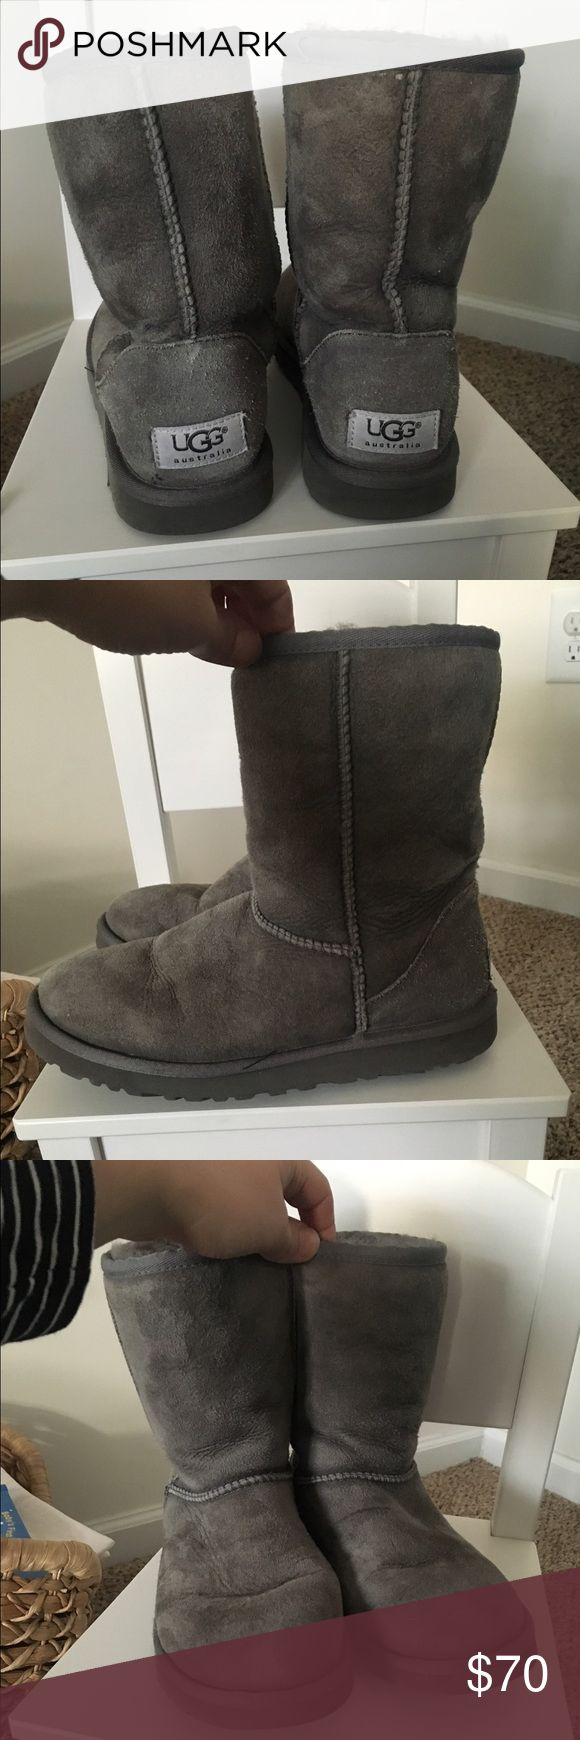 Authentic classic short UGGs Gray, size W5- fits a 6 1/2 or 7. These are NOT brand new but the price reflects that. They are still in pretty good shape and the new owner will get lots of good wear out of them. The only reason I'm selling is because they don't fit me anymore, after having my baby. UGG Shoes